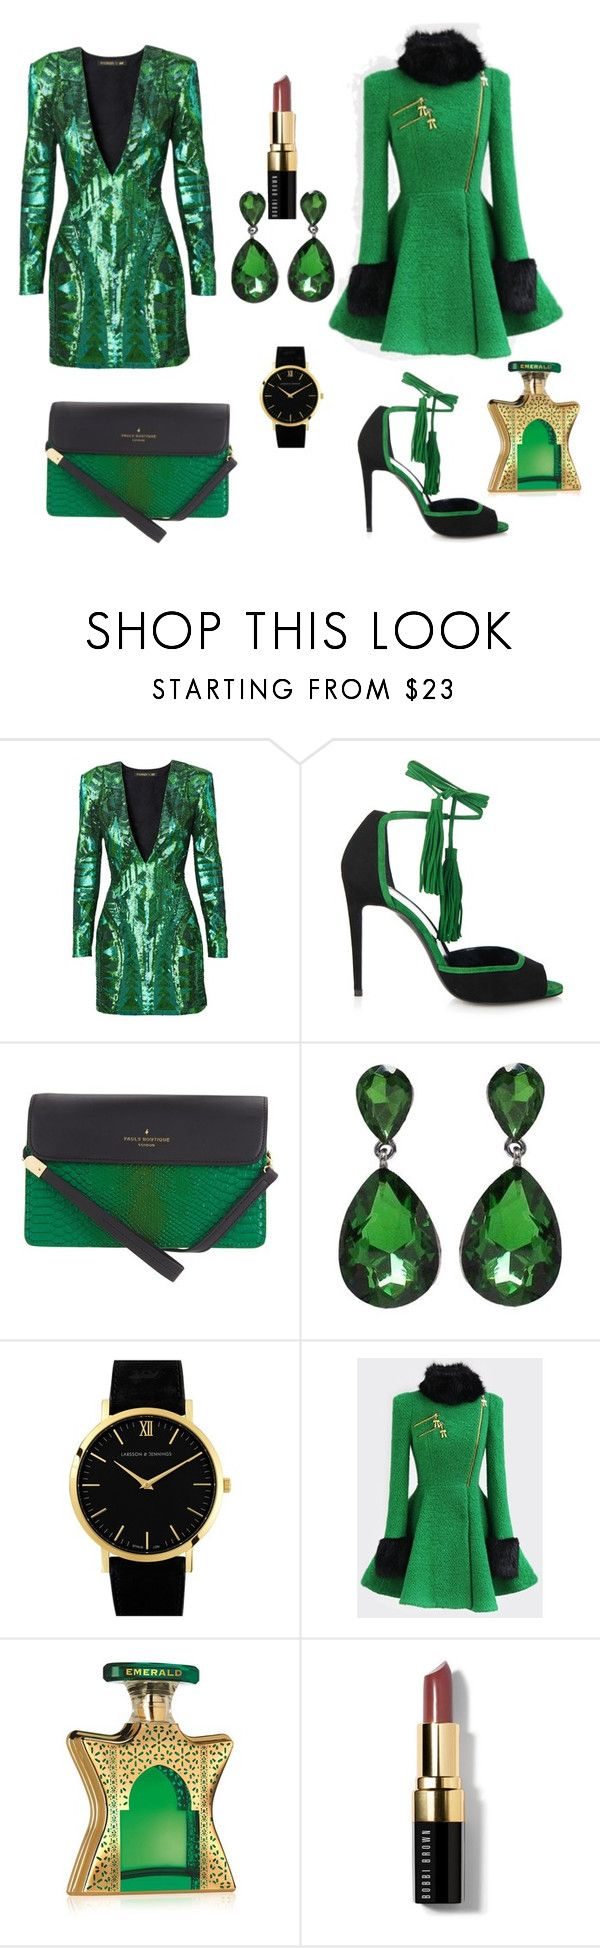 """Green Decadent"" by rharde-cene ❤ liked on Polyvore featuring Balmain, Pierre Hardy, Paul's Boutique, Larsson & Jennings, Bond No. 9 and Bobbi Brown Cosmetics"